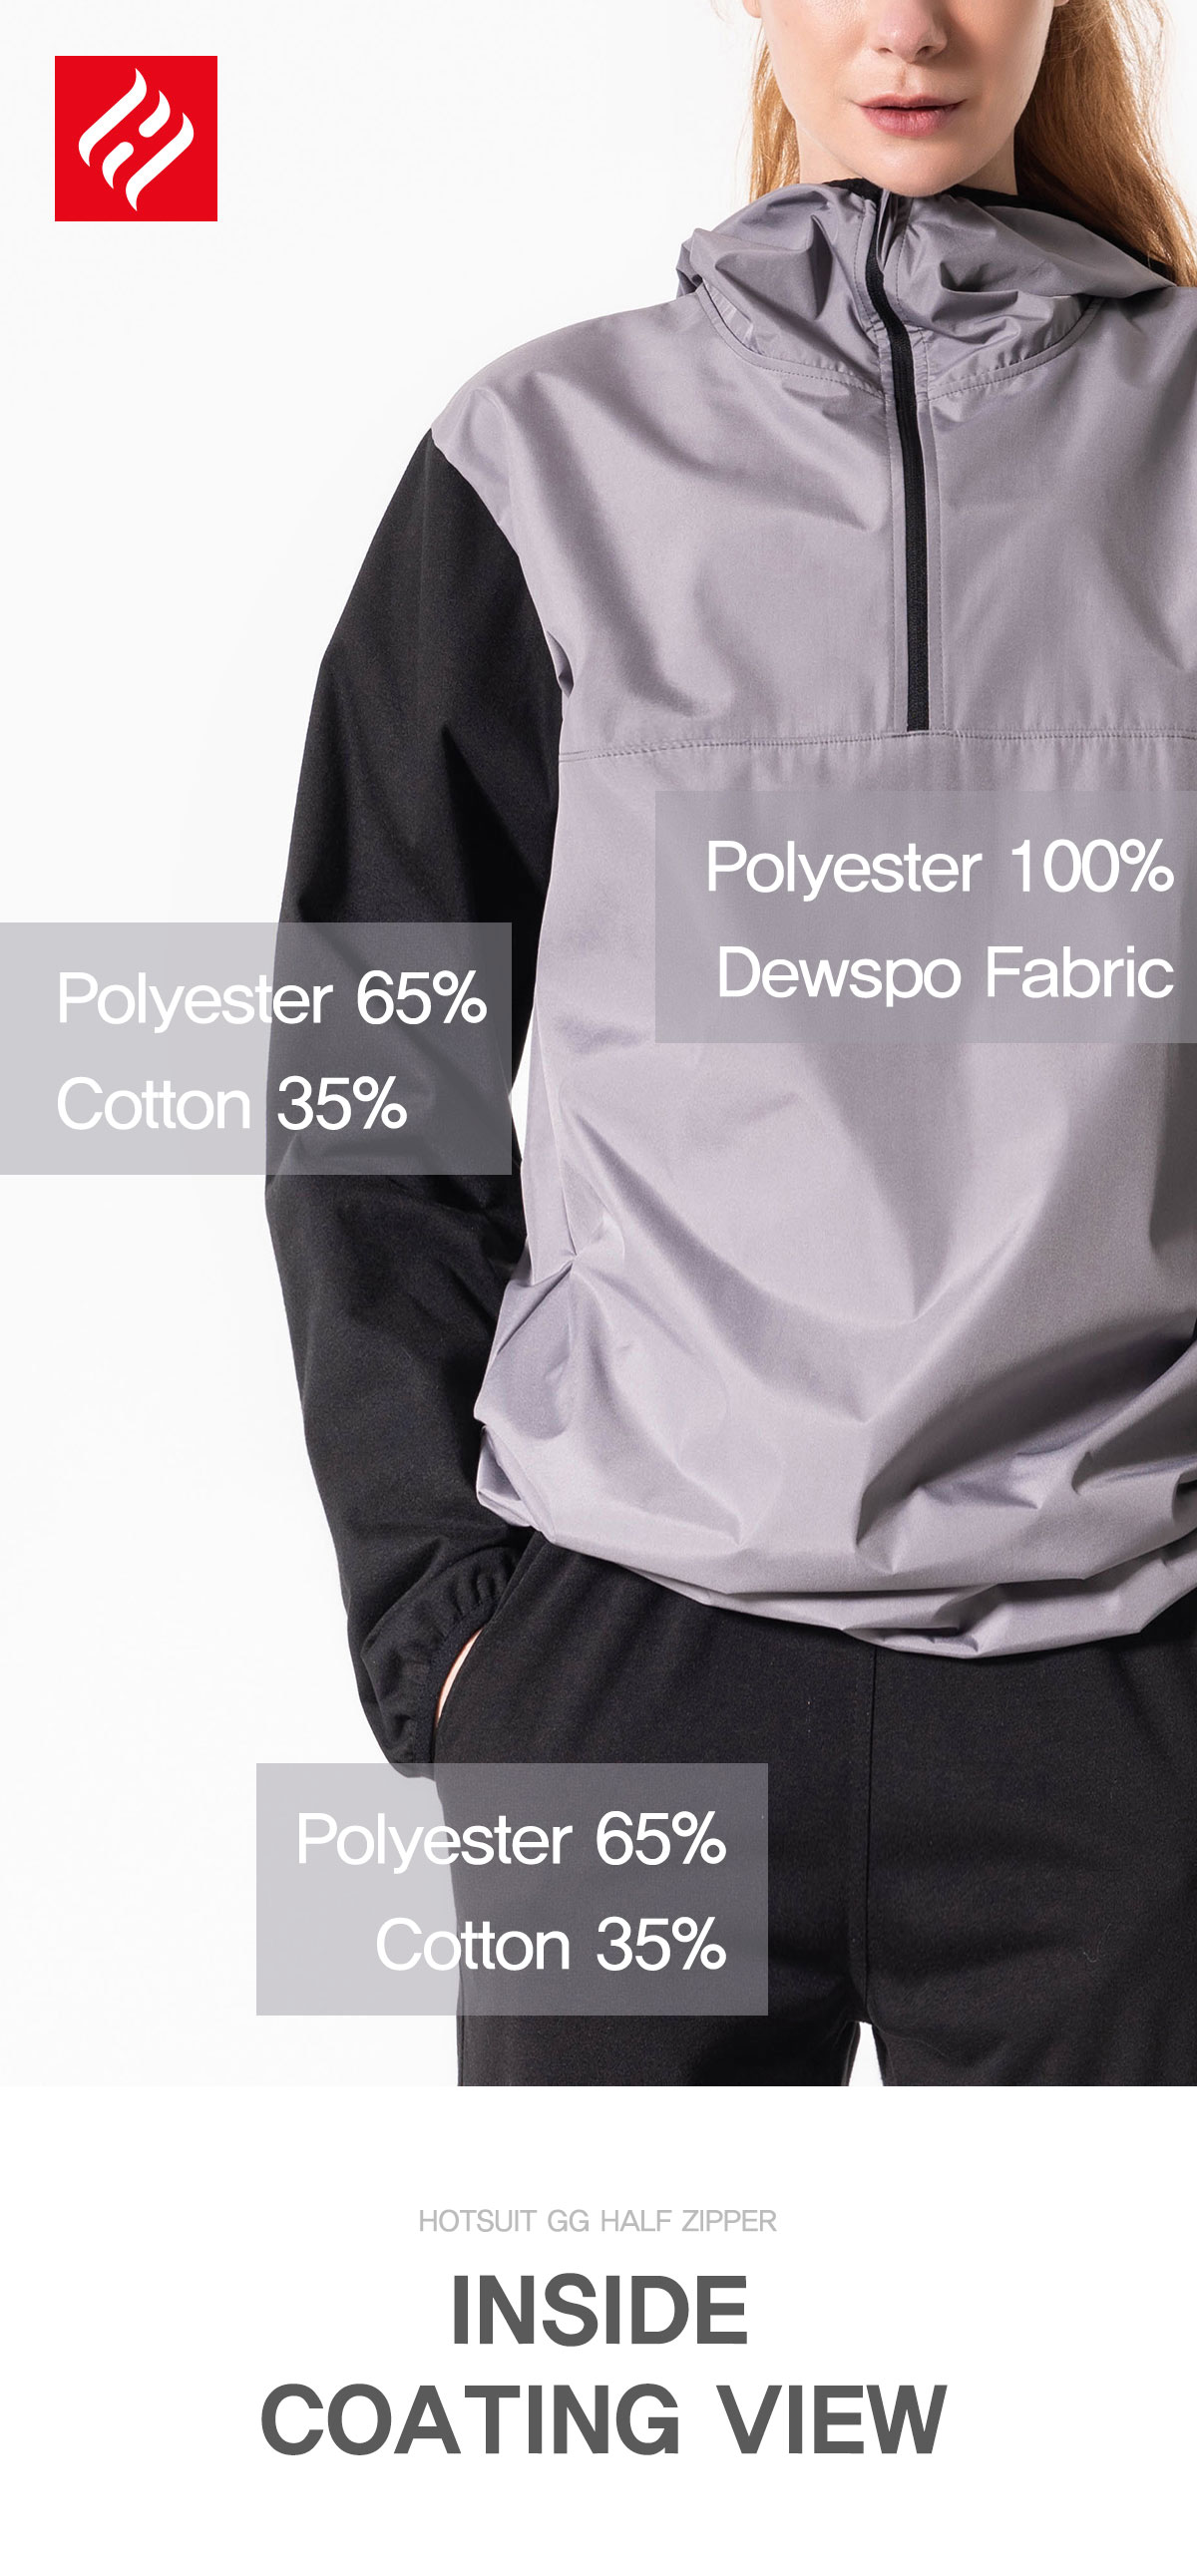 Polyester 100% Dewspo Fabric Polyester 65% Cotton 35%